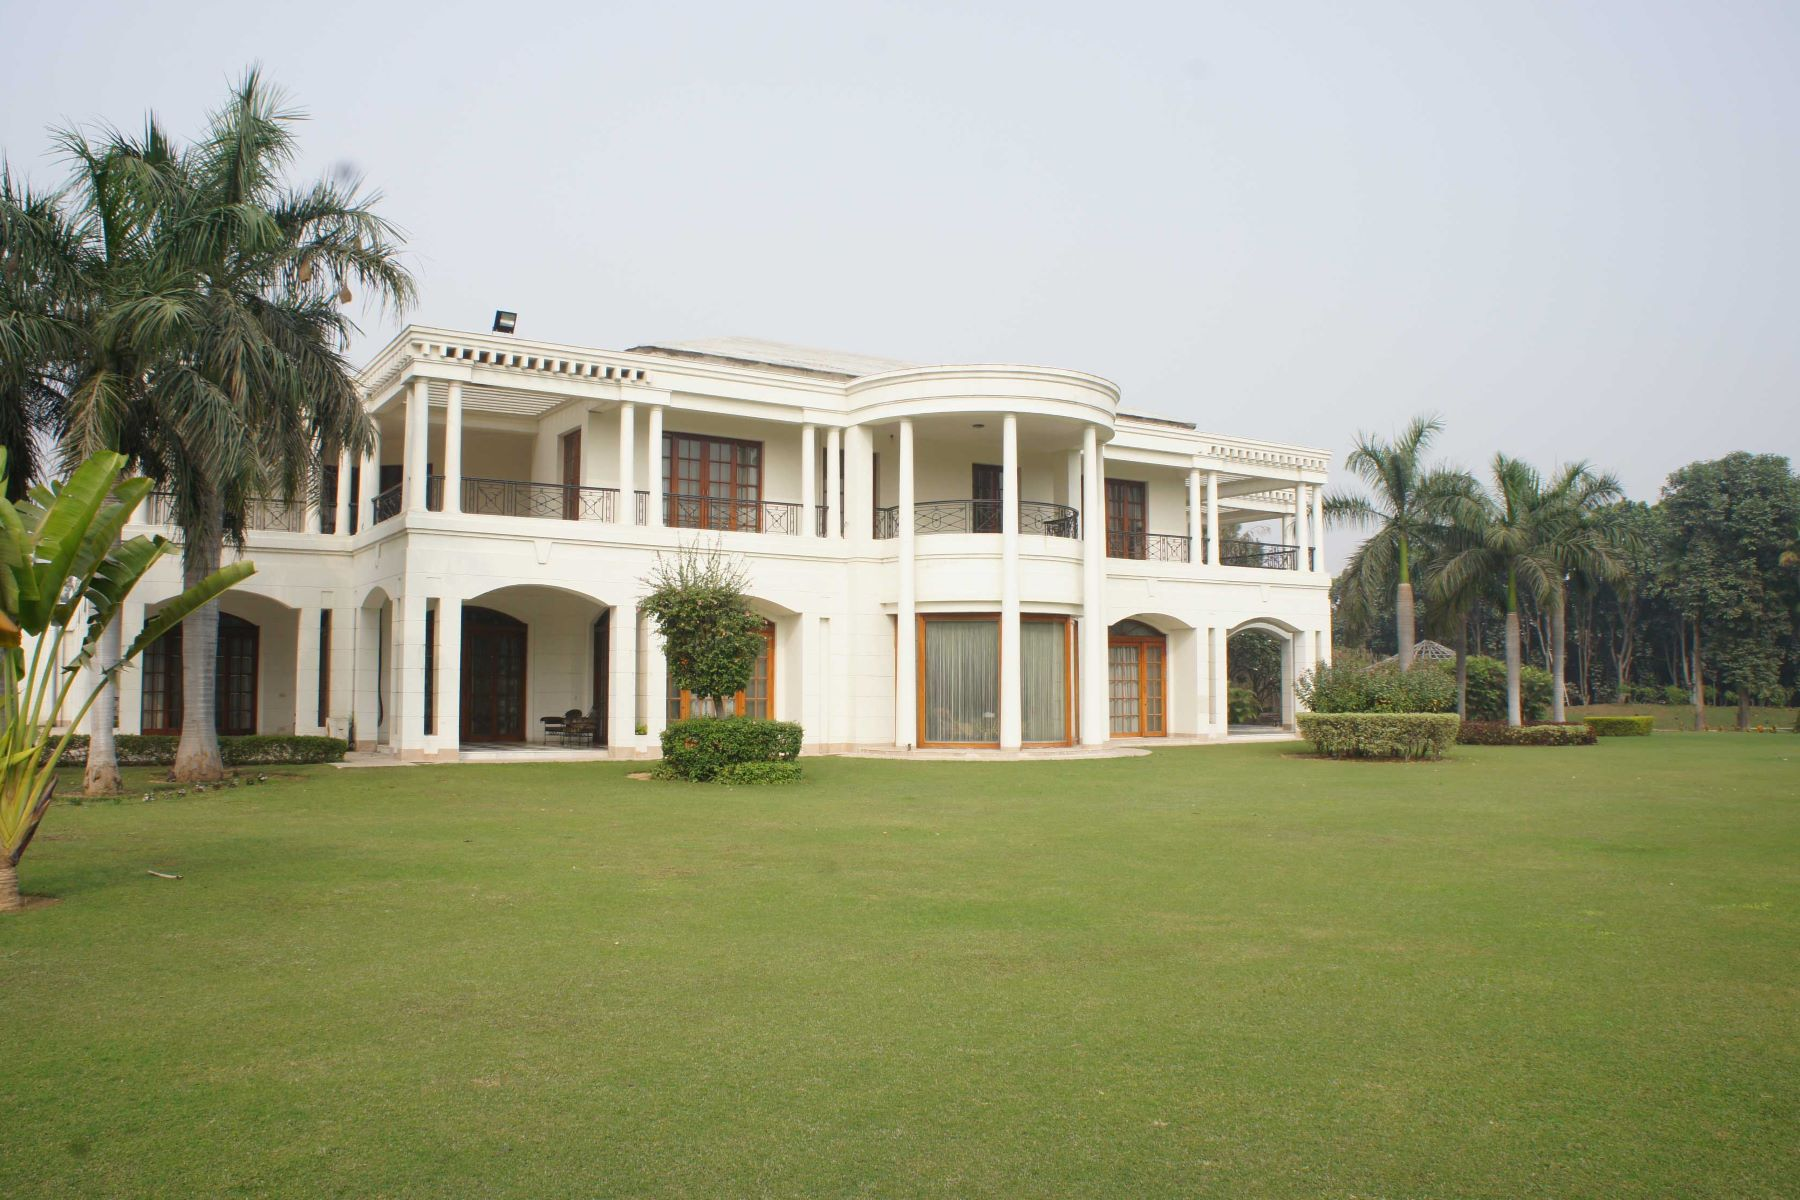 Farm / Ranch / Plantation for Sale at Farmhouse in Westend Greens West End Green, Shivji Marg New Delhi, Delhi, 110038 India